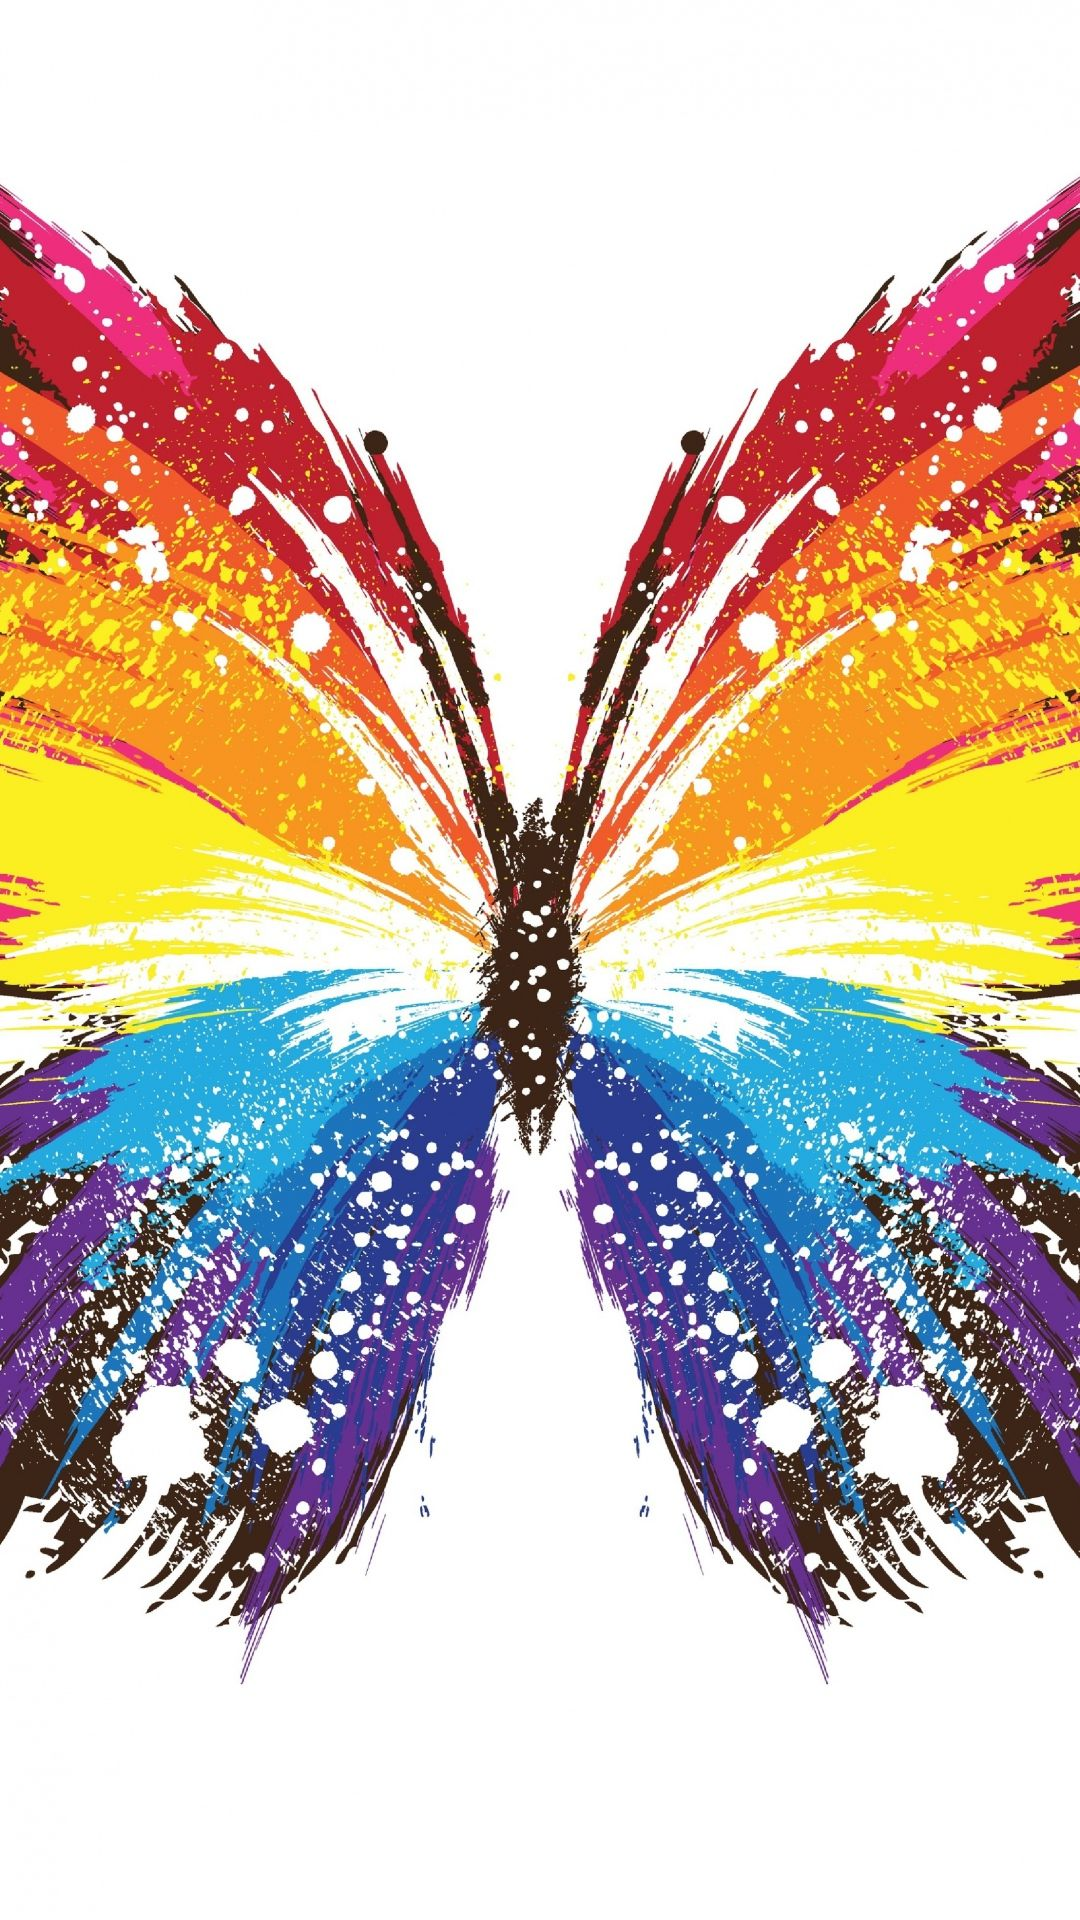 colorful abstract butterfly iphone wallpaper background. Black Bedroom Furniture Sets. Home Design Ideas